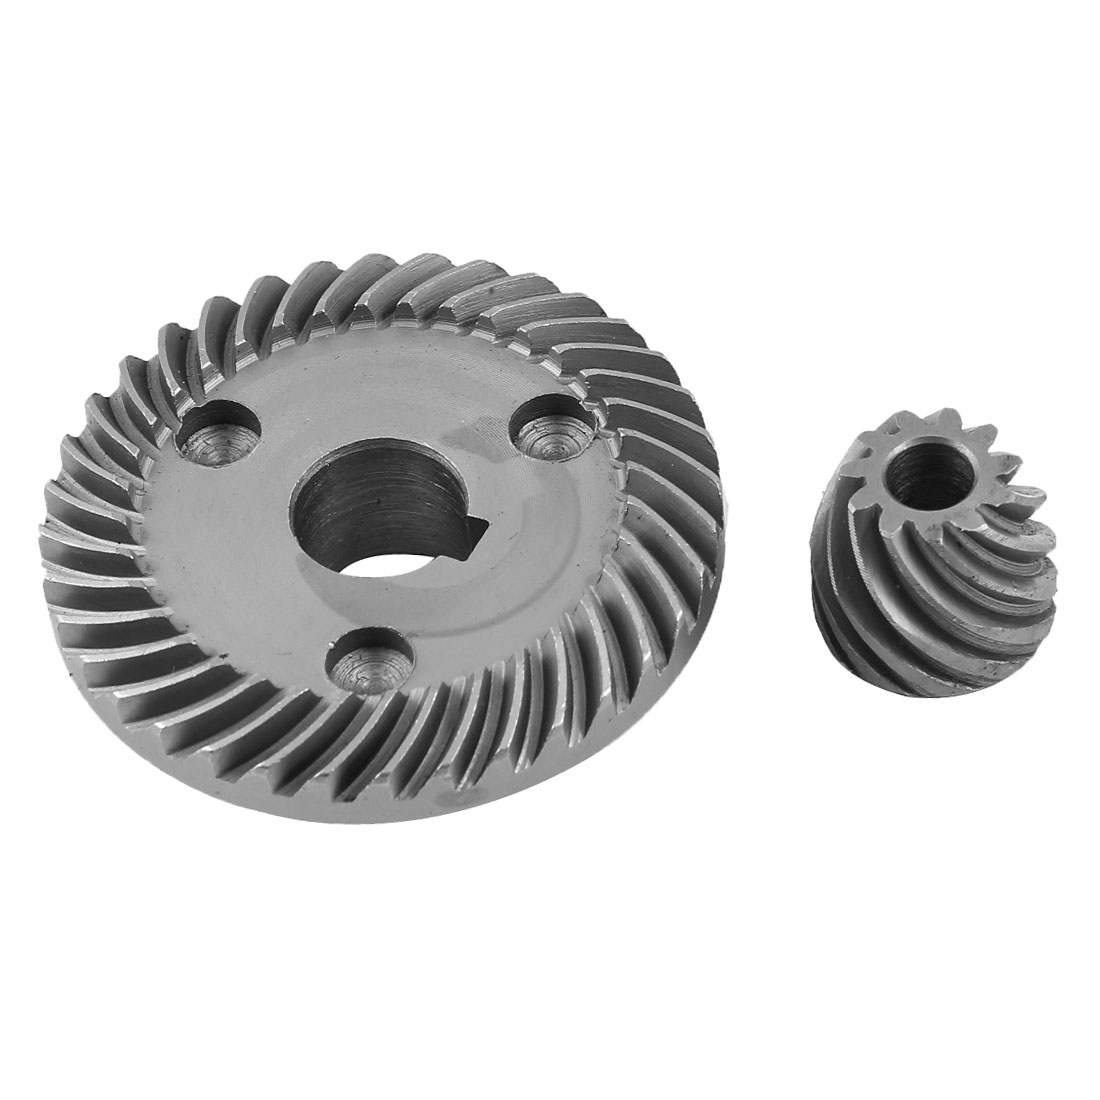 Unique Bargains Angle Grinder Repair Part Spiral Bevel Gear Set for Makita 9553 by Unique-Bargains